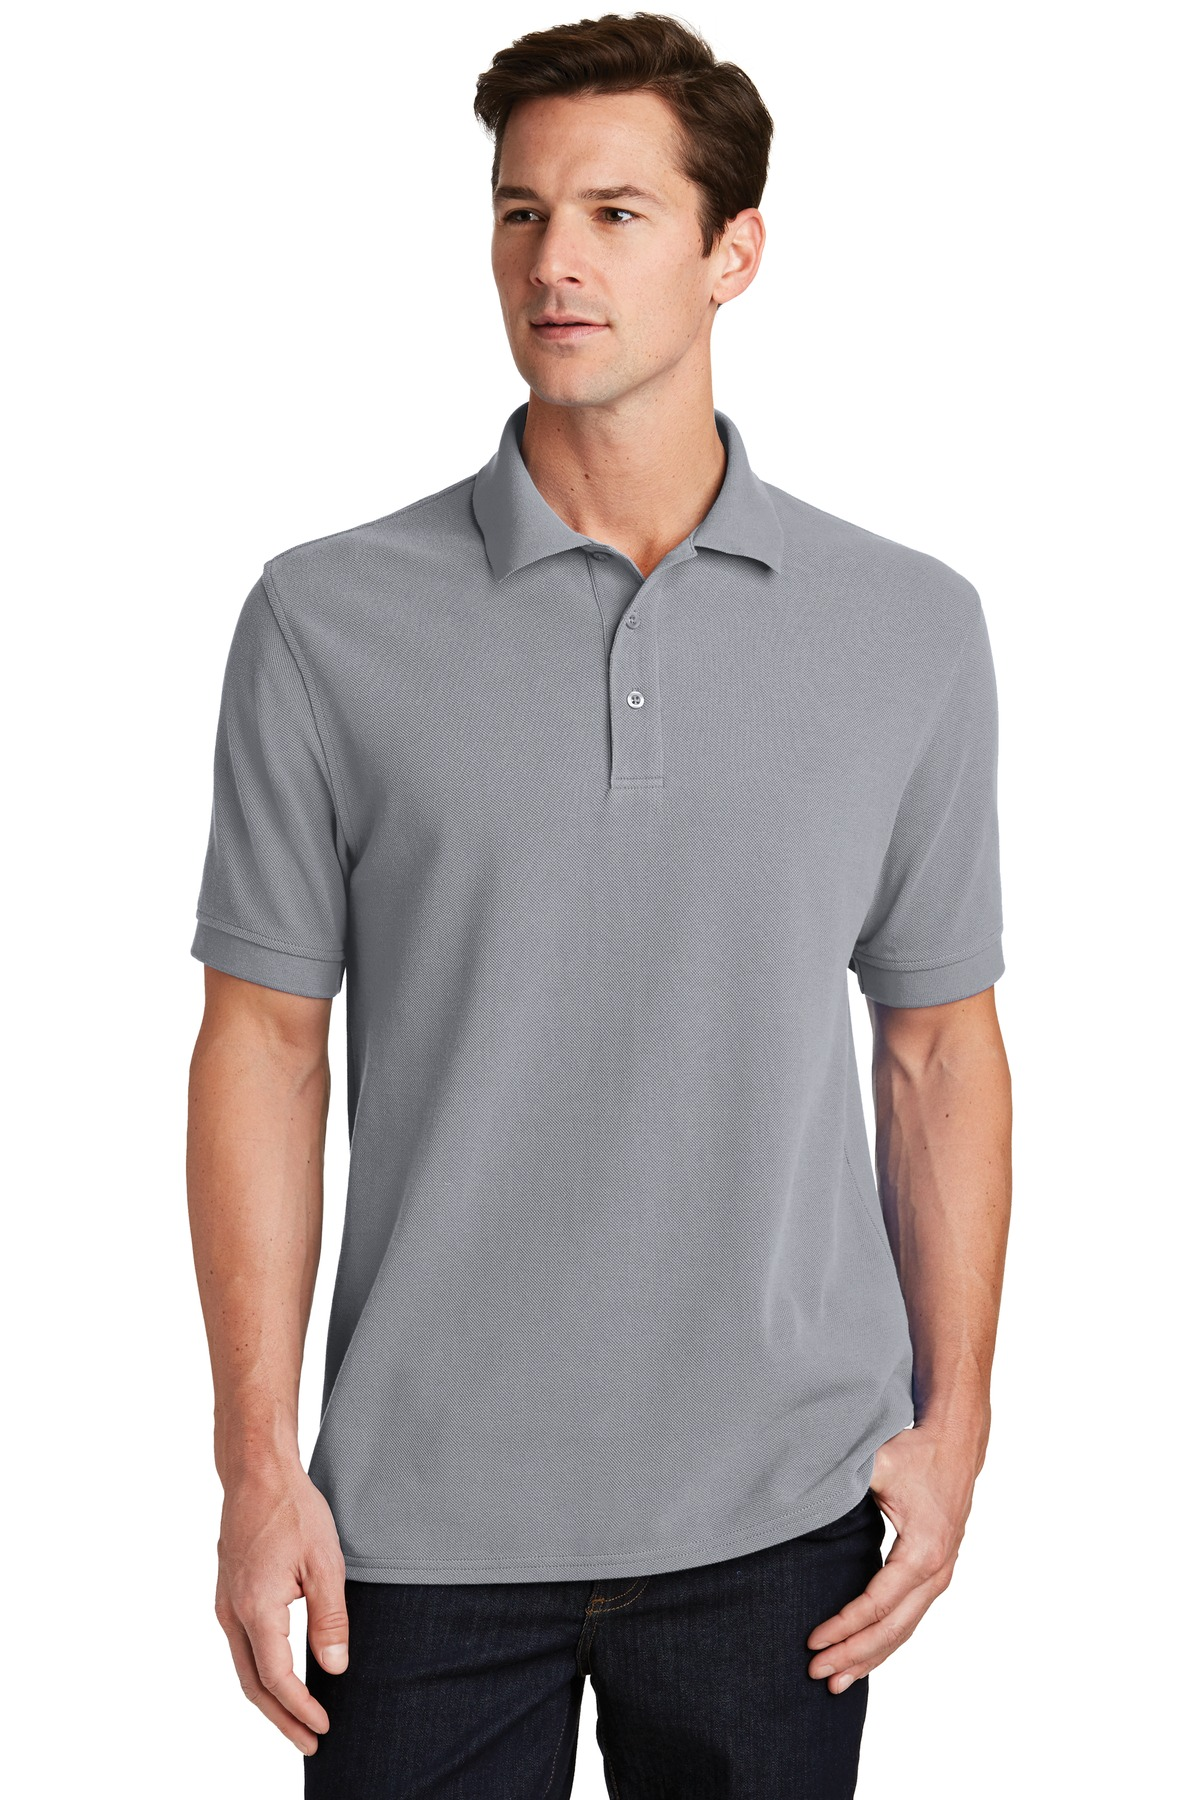 Port & Company ®  Combed Ring Spun Pique Polo. KP1500 - Silver